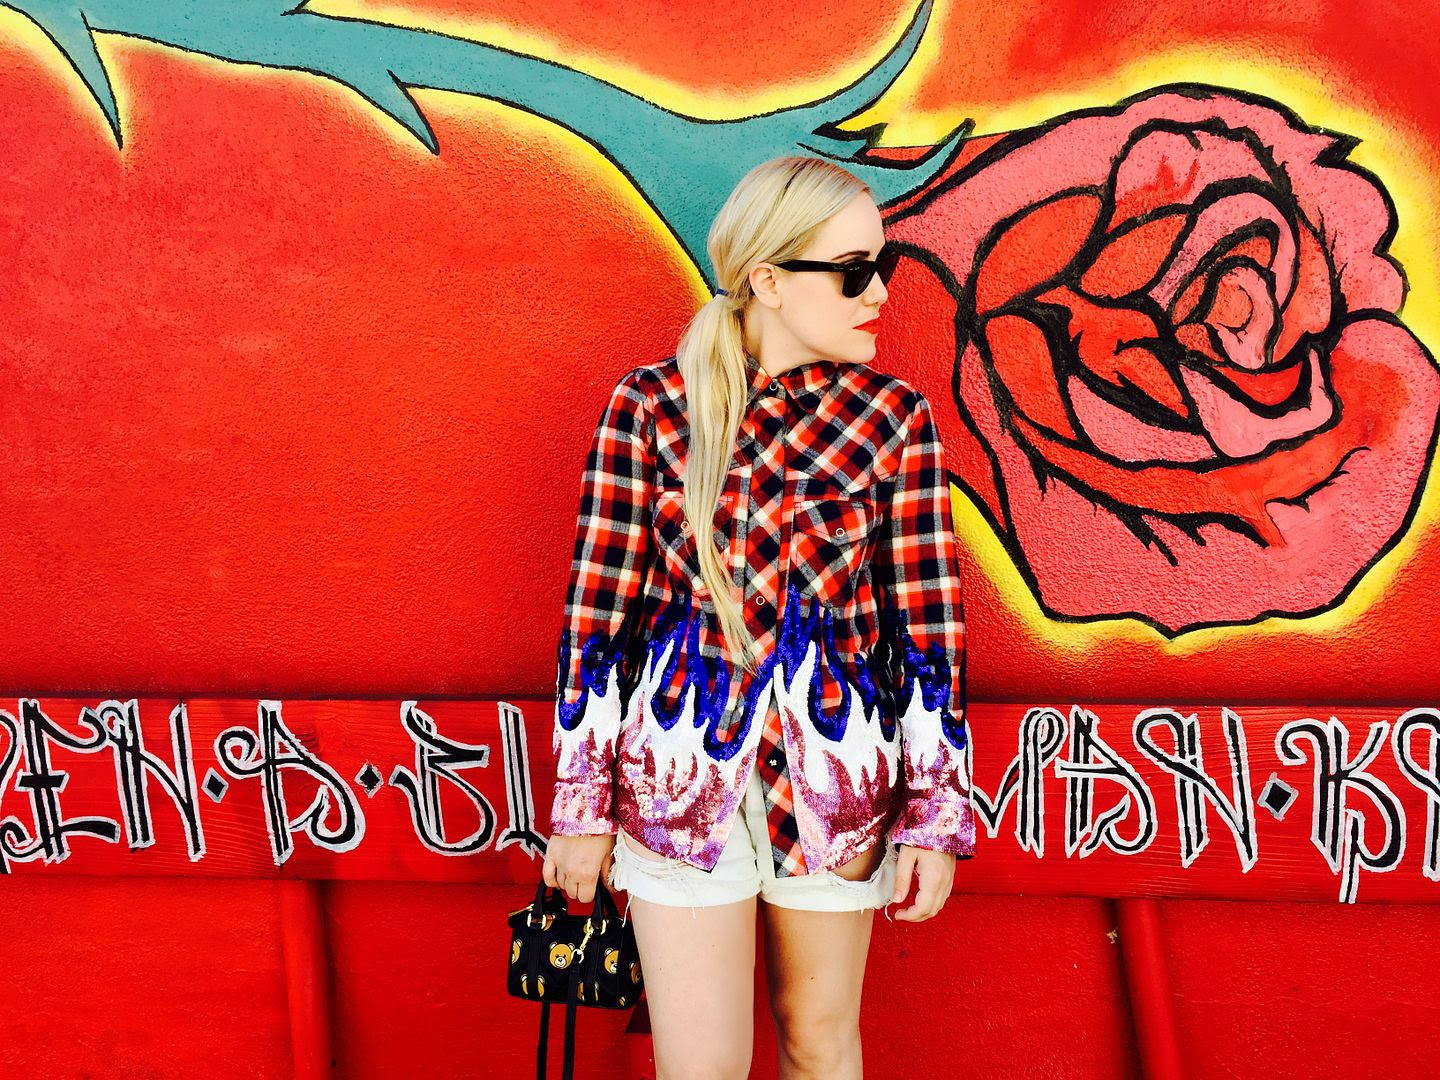 photo FAP-Filles et Papa plaid shirt- BeckermanBlog-Moschino Teddy Bear Bag- Comme des garcons- Cailli Beckerman-2_zpsp4wcftpq.jpg